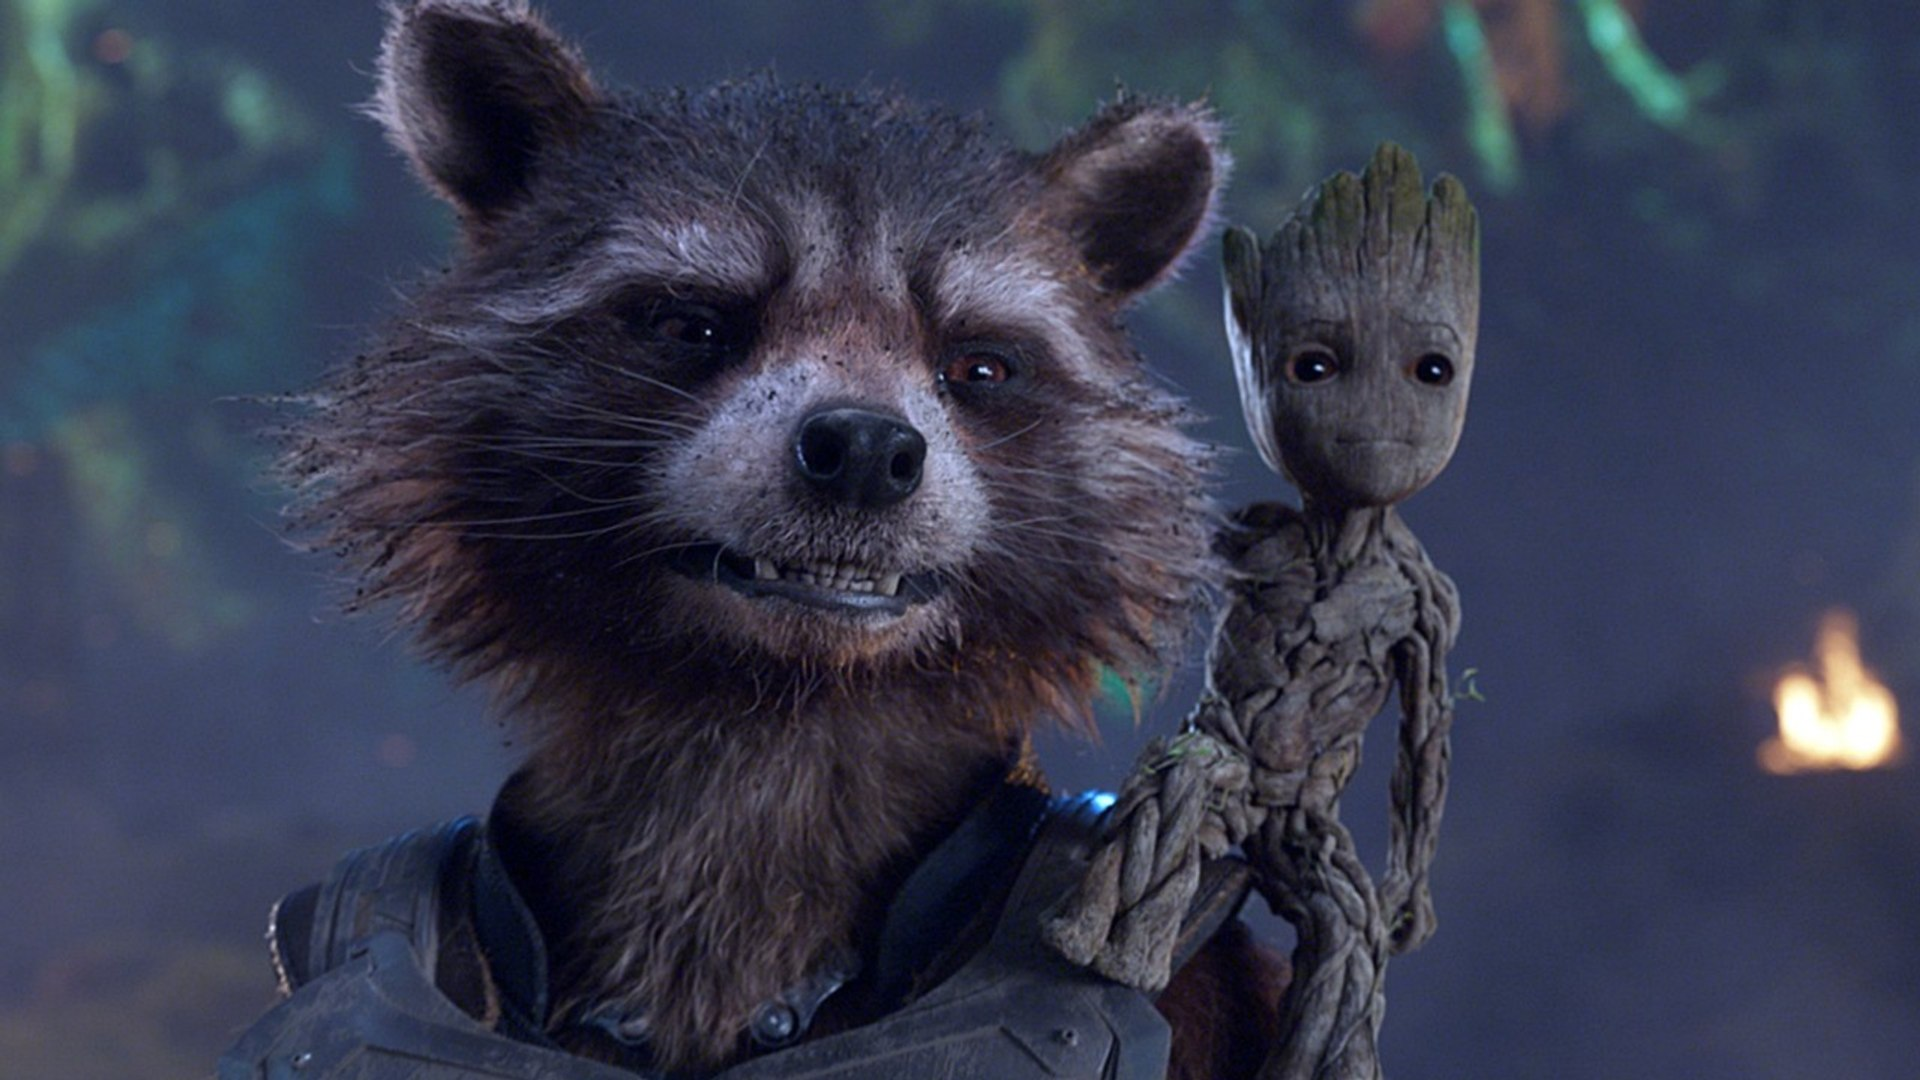 Baby Groot Fans May Want This Life-Size Hot Toys Collectible